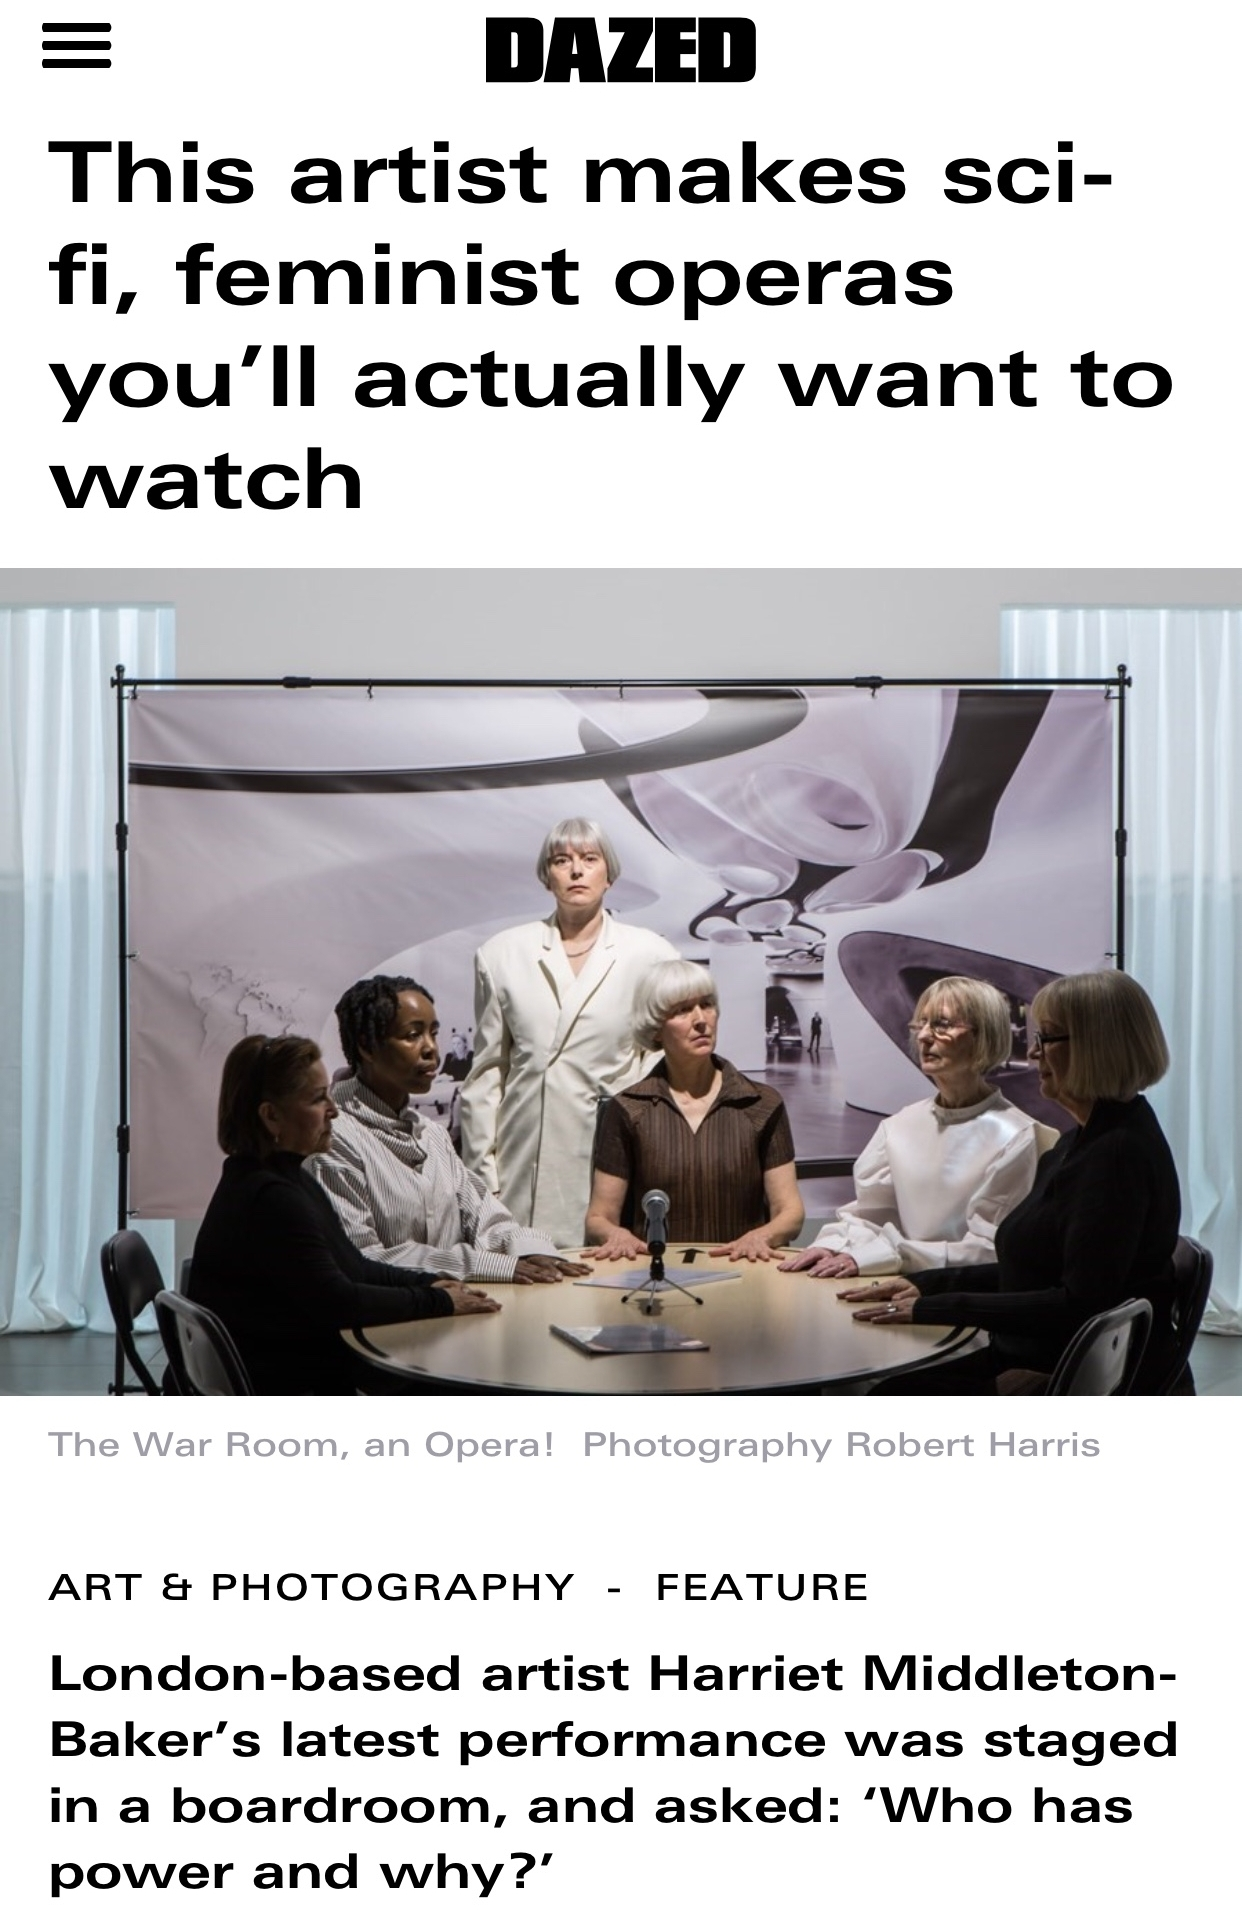 DAZED DIGITAL   Harriet Middleton-Baker in conversation with DAZED about her latest work 'The War Room, An Opera!' choreographer by myself and Madison Capel-Bird of SISTA SISTA.